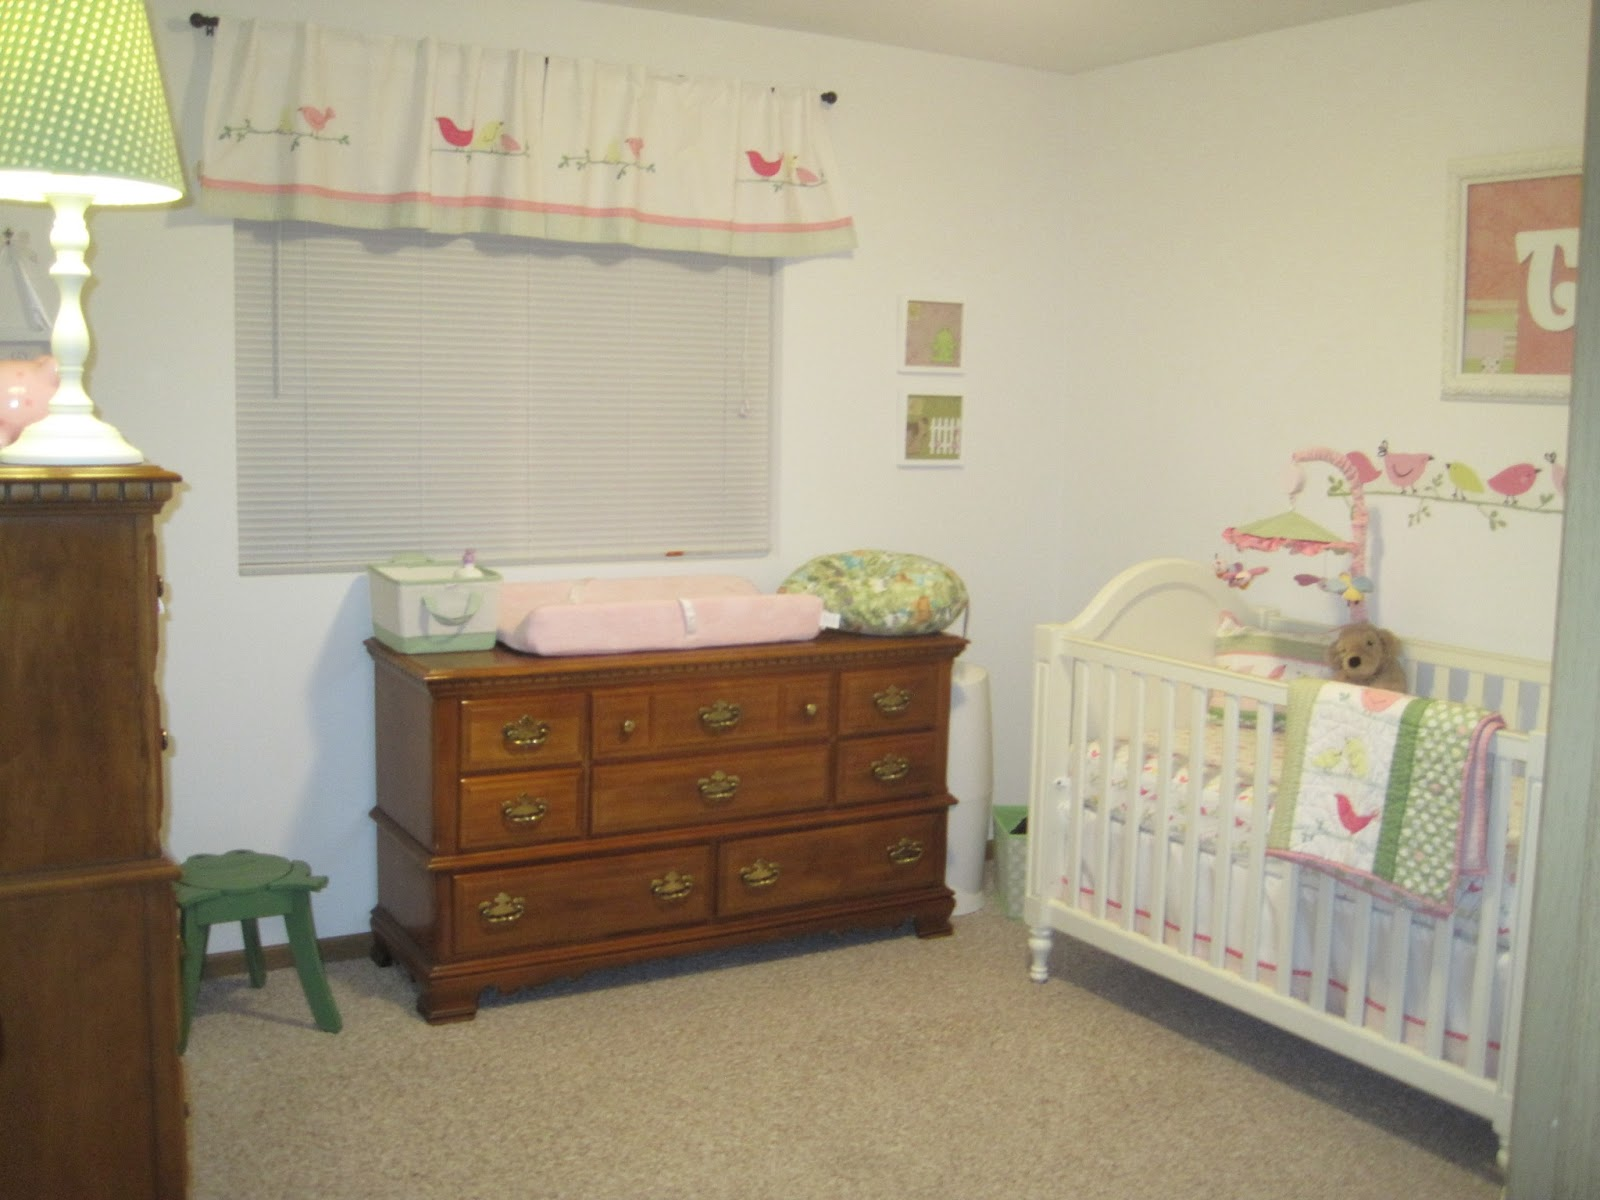 Mommy mia monologues do it yourself nursery decorating art idea we hung the pictures right next to her changing table share your ideas for diy nursery solutioingenieria Gallery